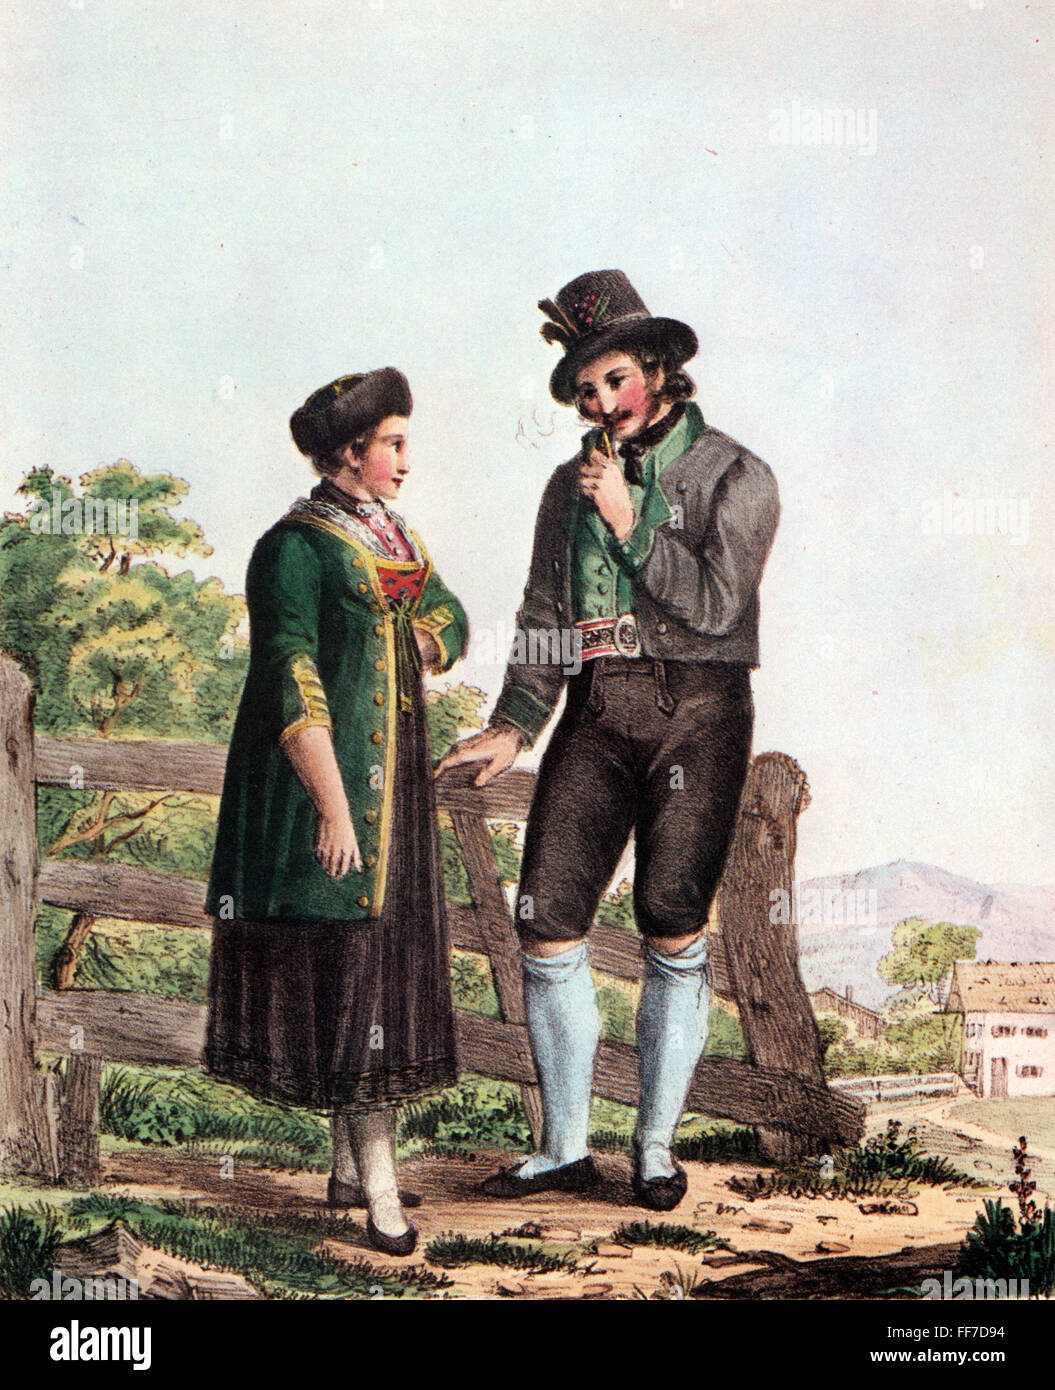 Peasant girl and swain in Bavarian traditiobal costumes 19th century  sc 1 st  Alamy & Peasant girl and swain in Bavarian traditiobal costumes 19th ...